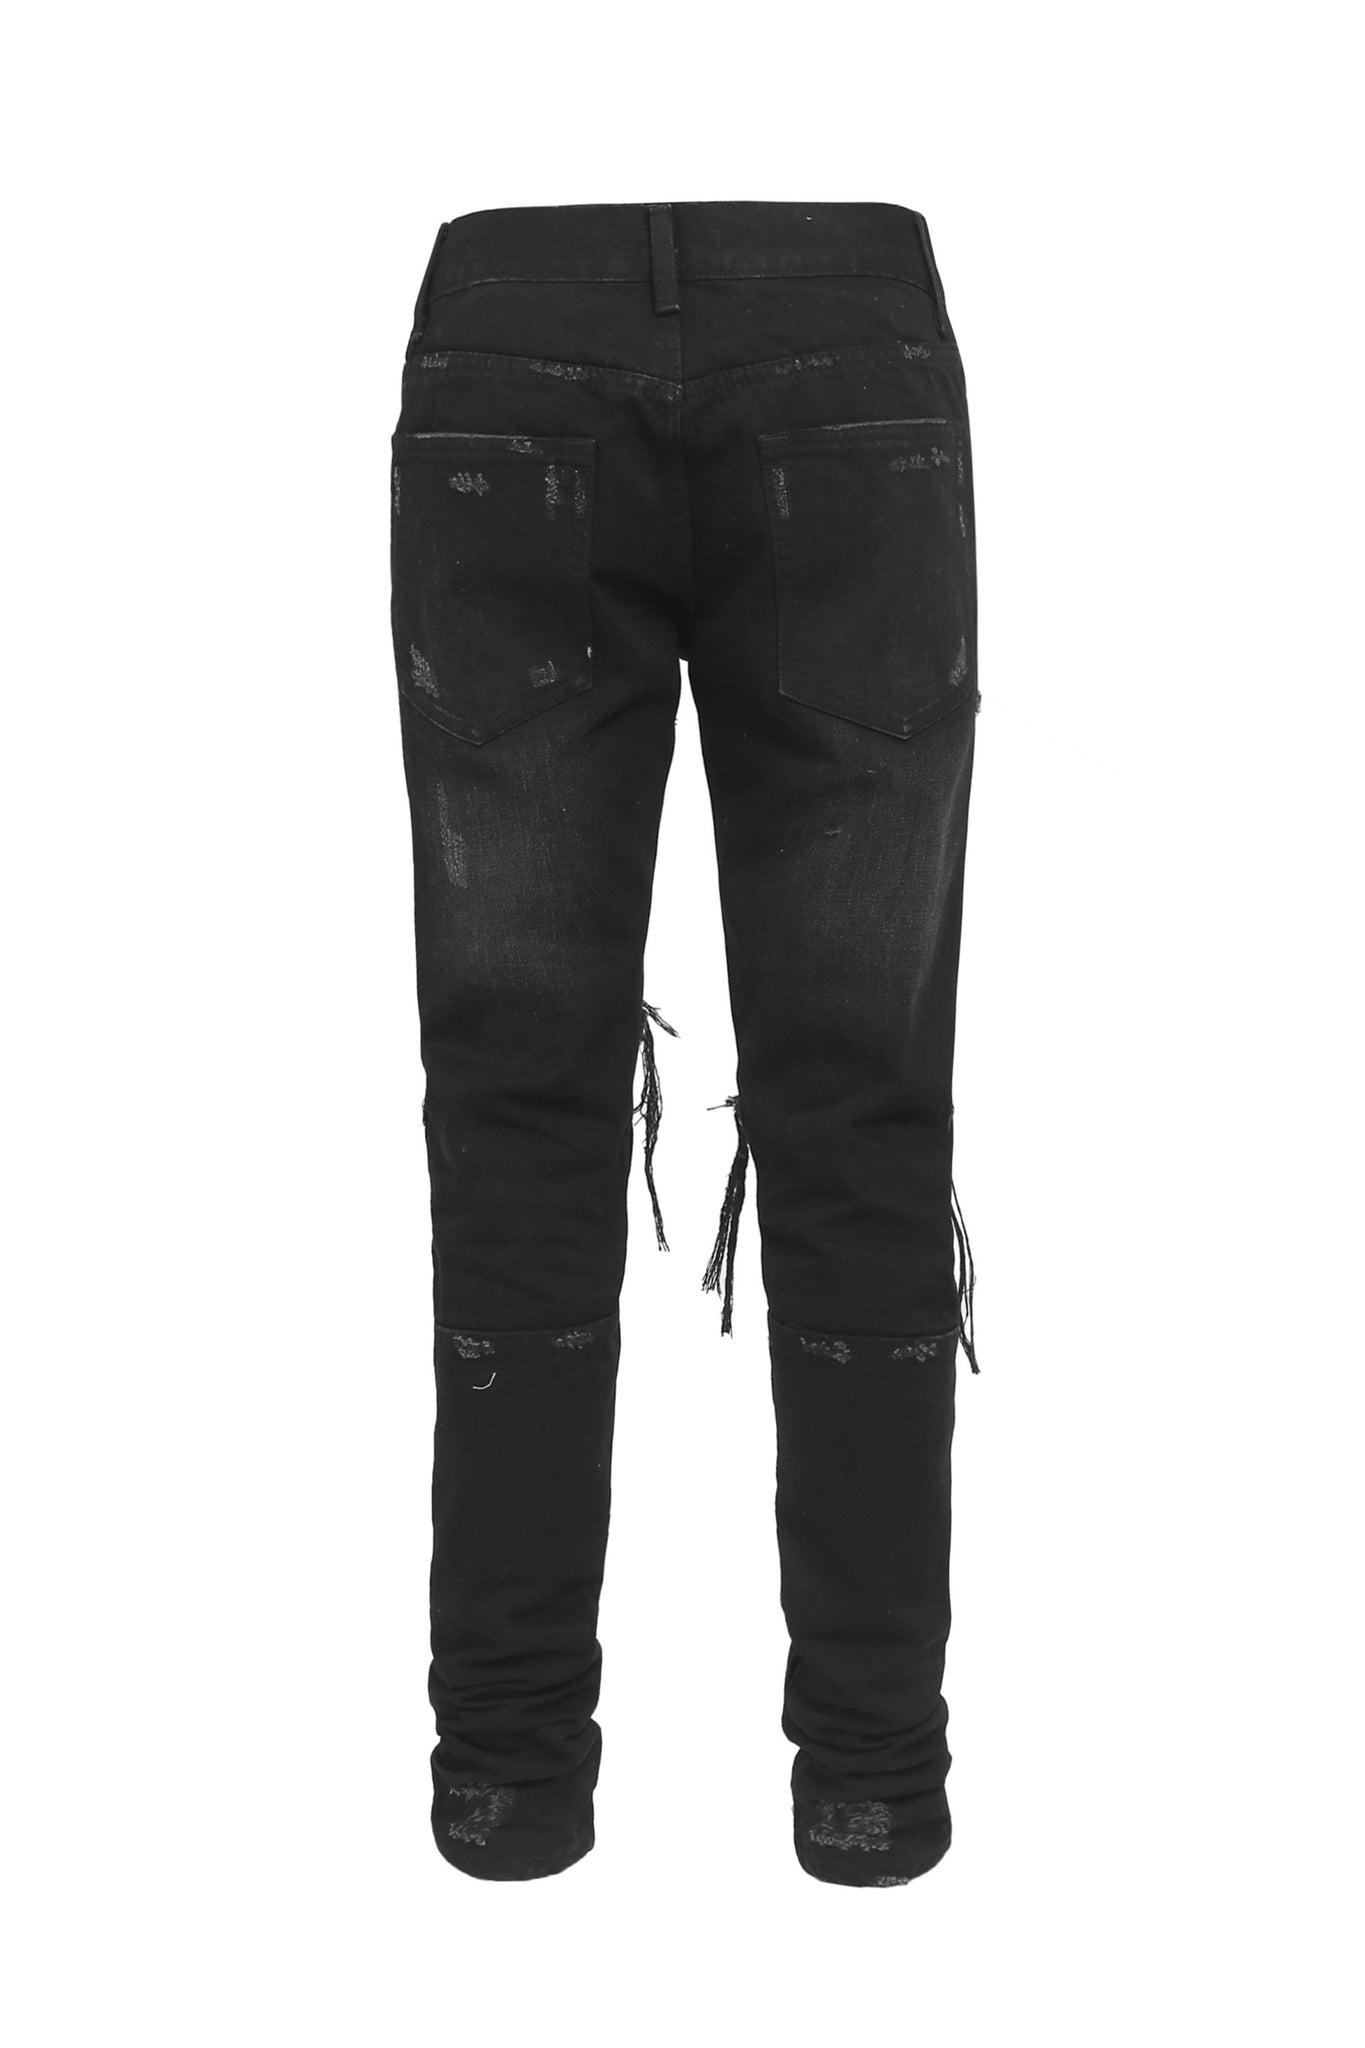 BLACK DENIM JEAN WITH KNEE RIPS AND ANKLE ZIPPERS